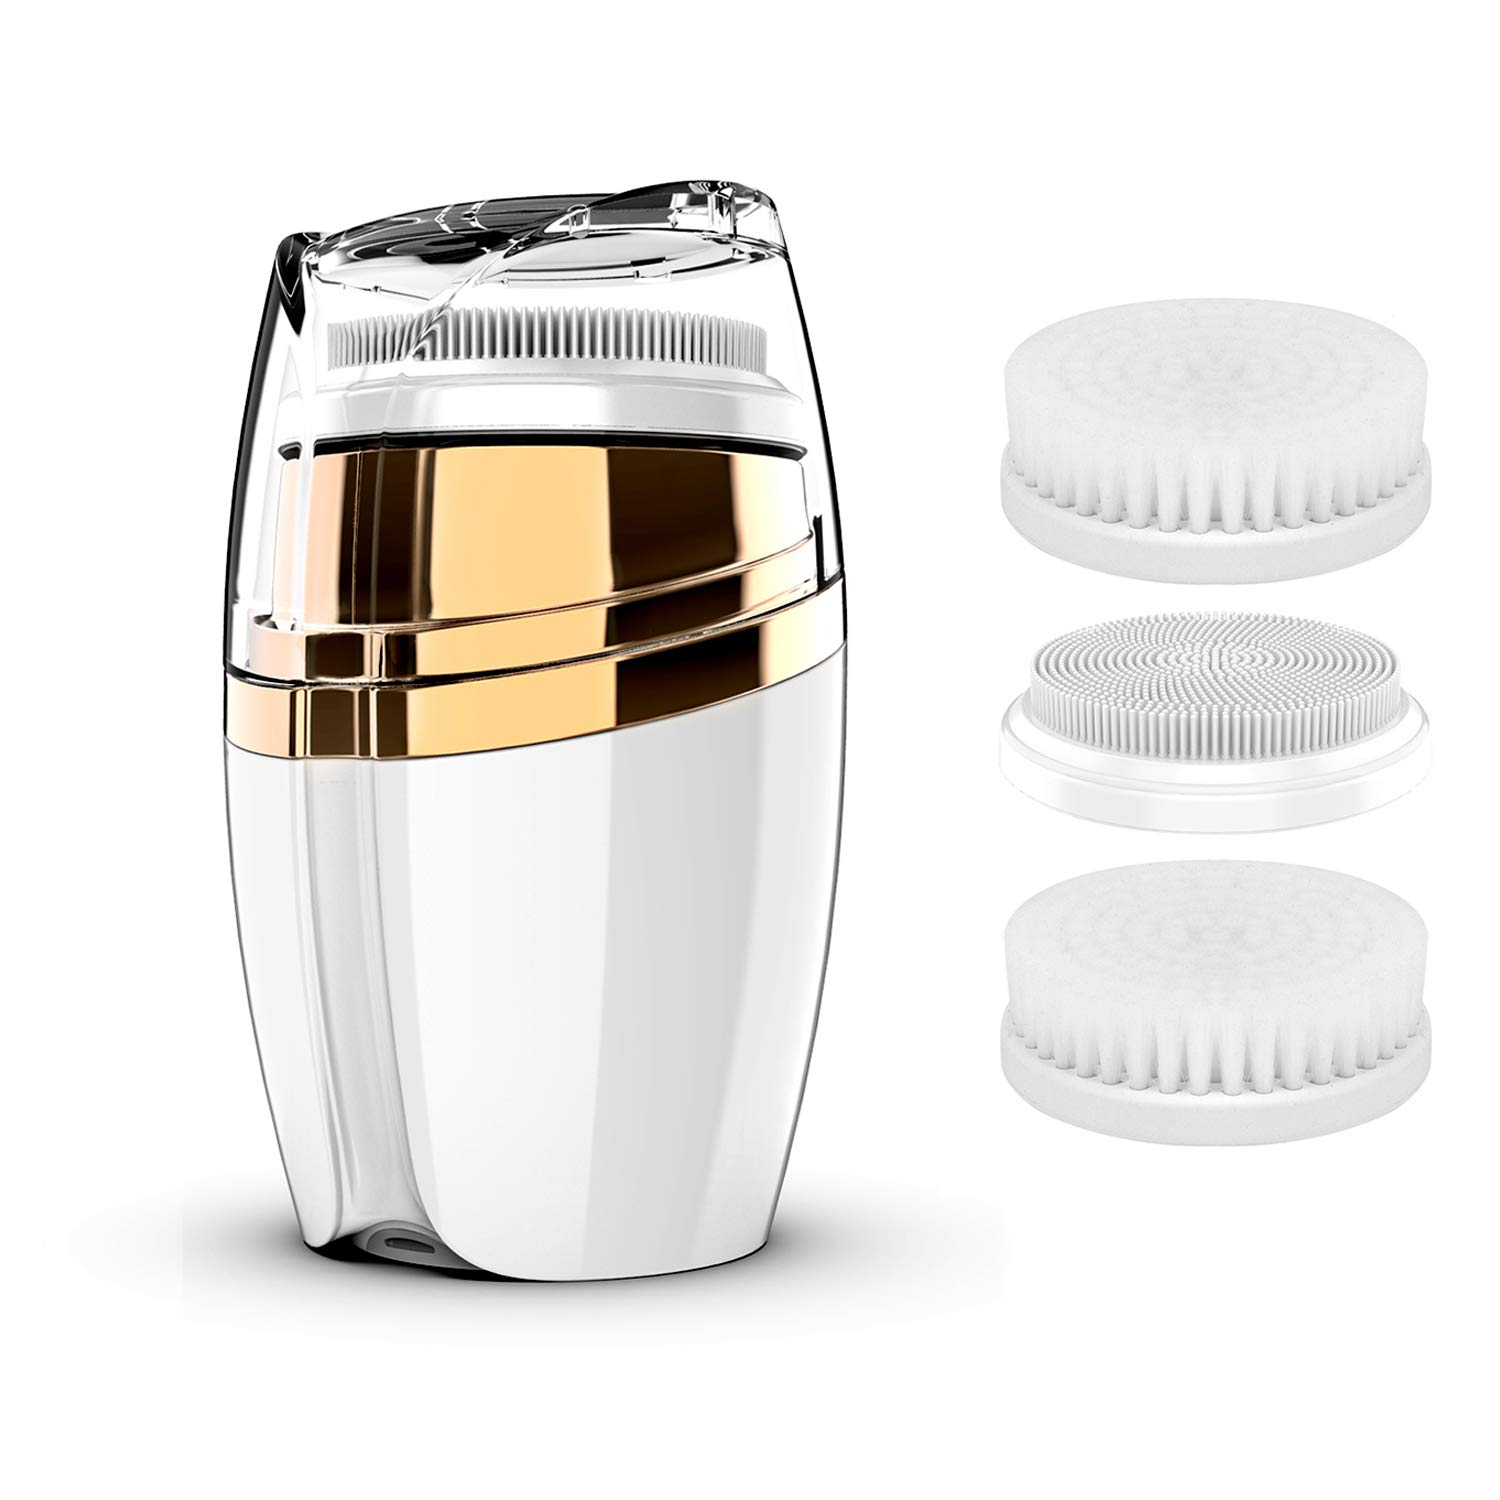 COOFO Electric Facial Cleanser Brush Rechargeable Sonic Face Cleansing Brush Waterproof with 3 Facial Brush Heads 3 Modes Vibrating